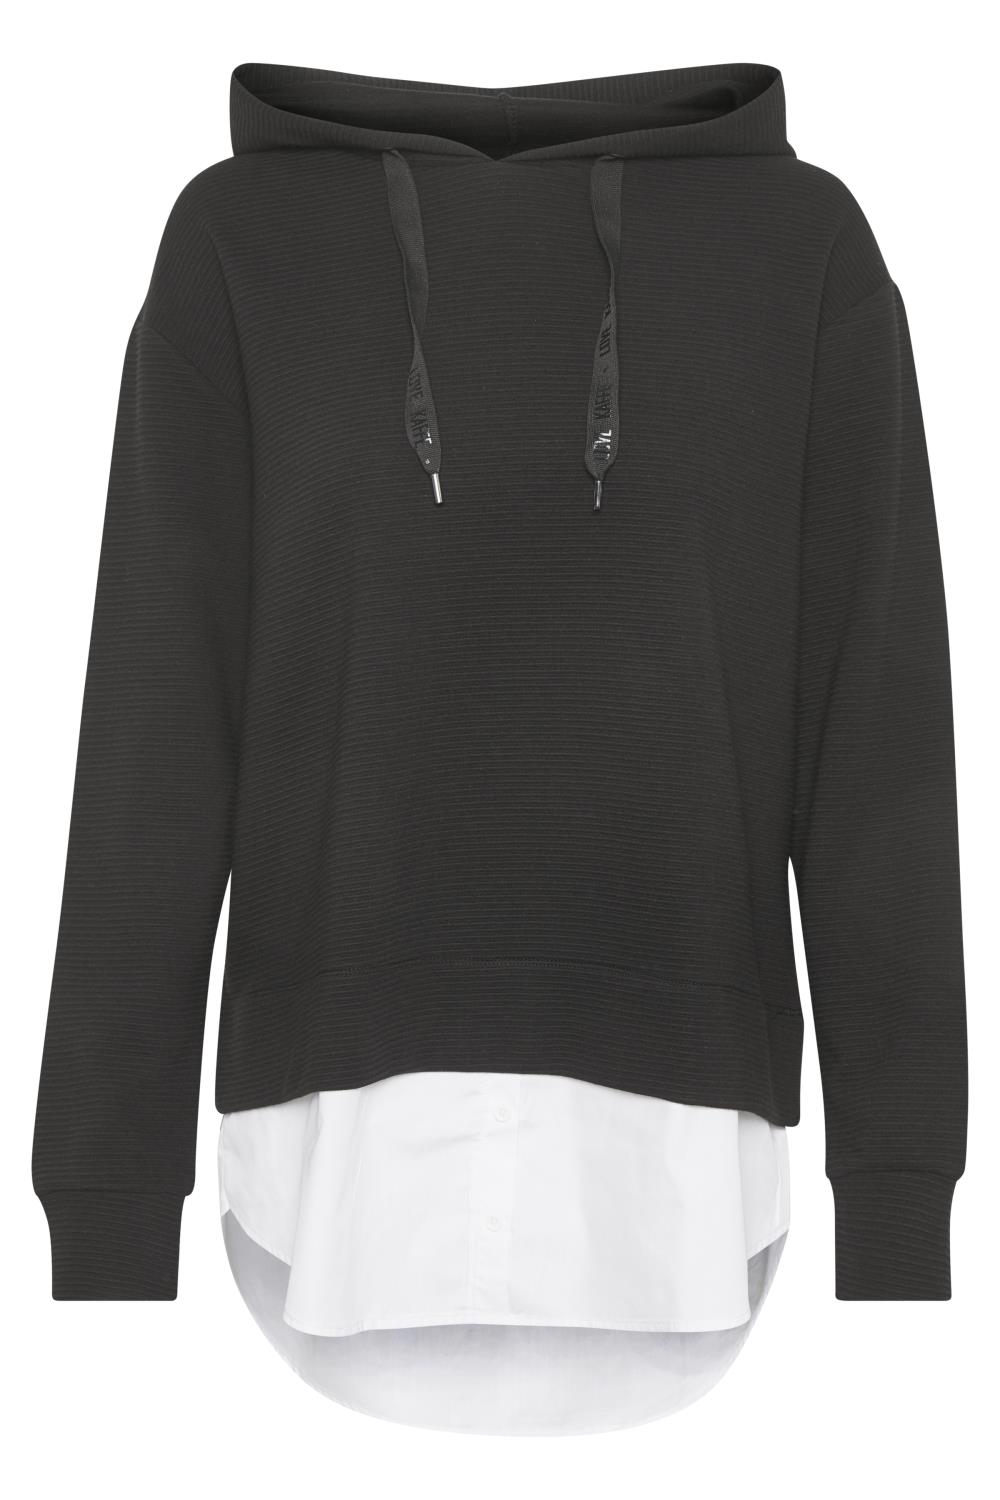 Kaffe Lexie sweatshirt, black deep